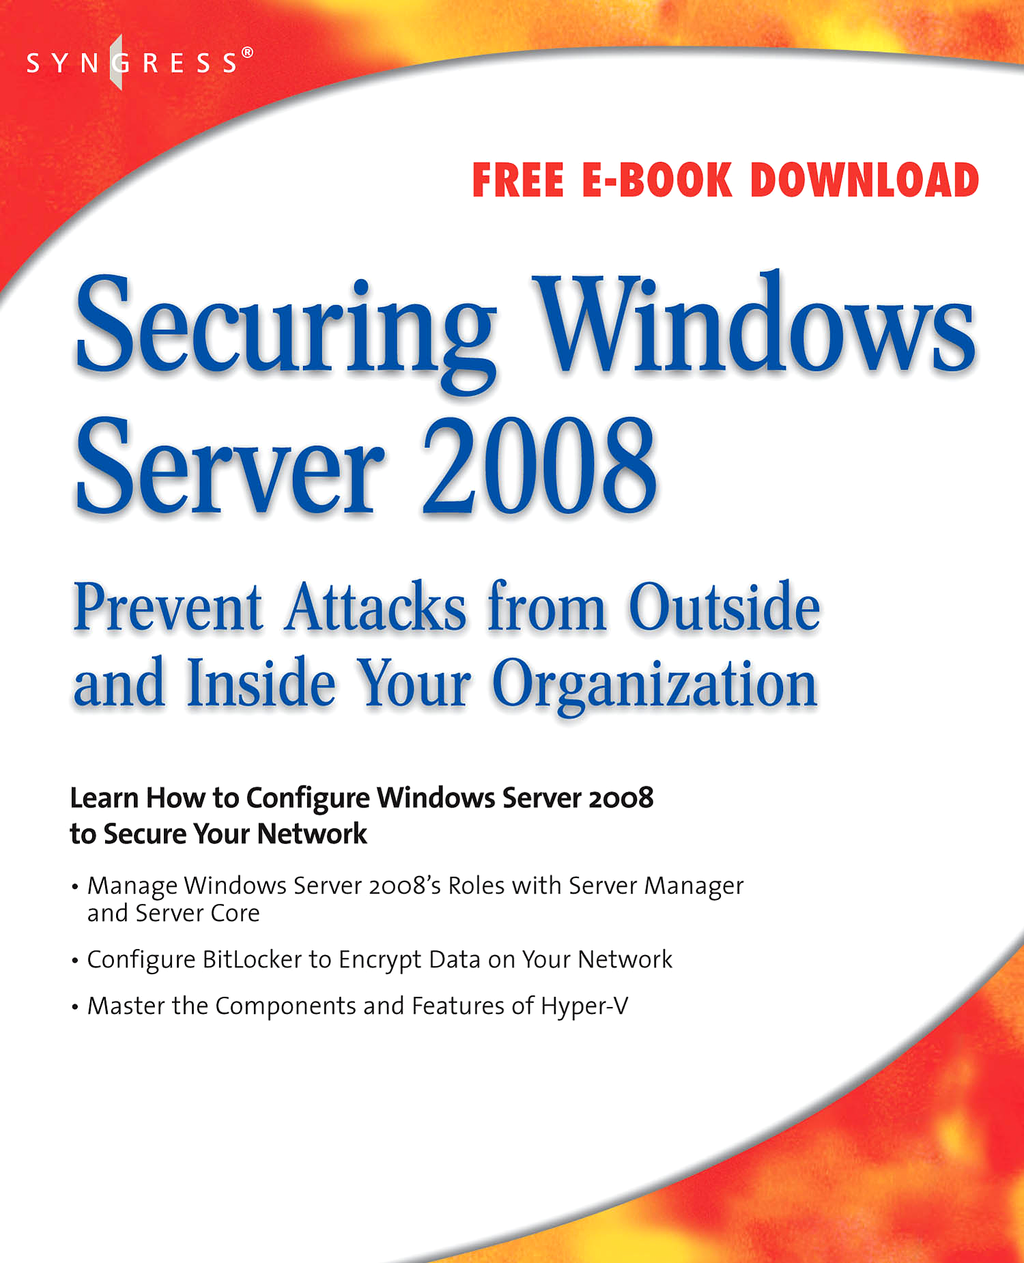 Securing Windows Server 2008 Prevent Attacks from Outside and Inside Your Organization